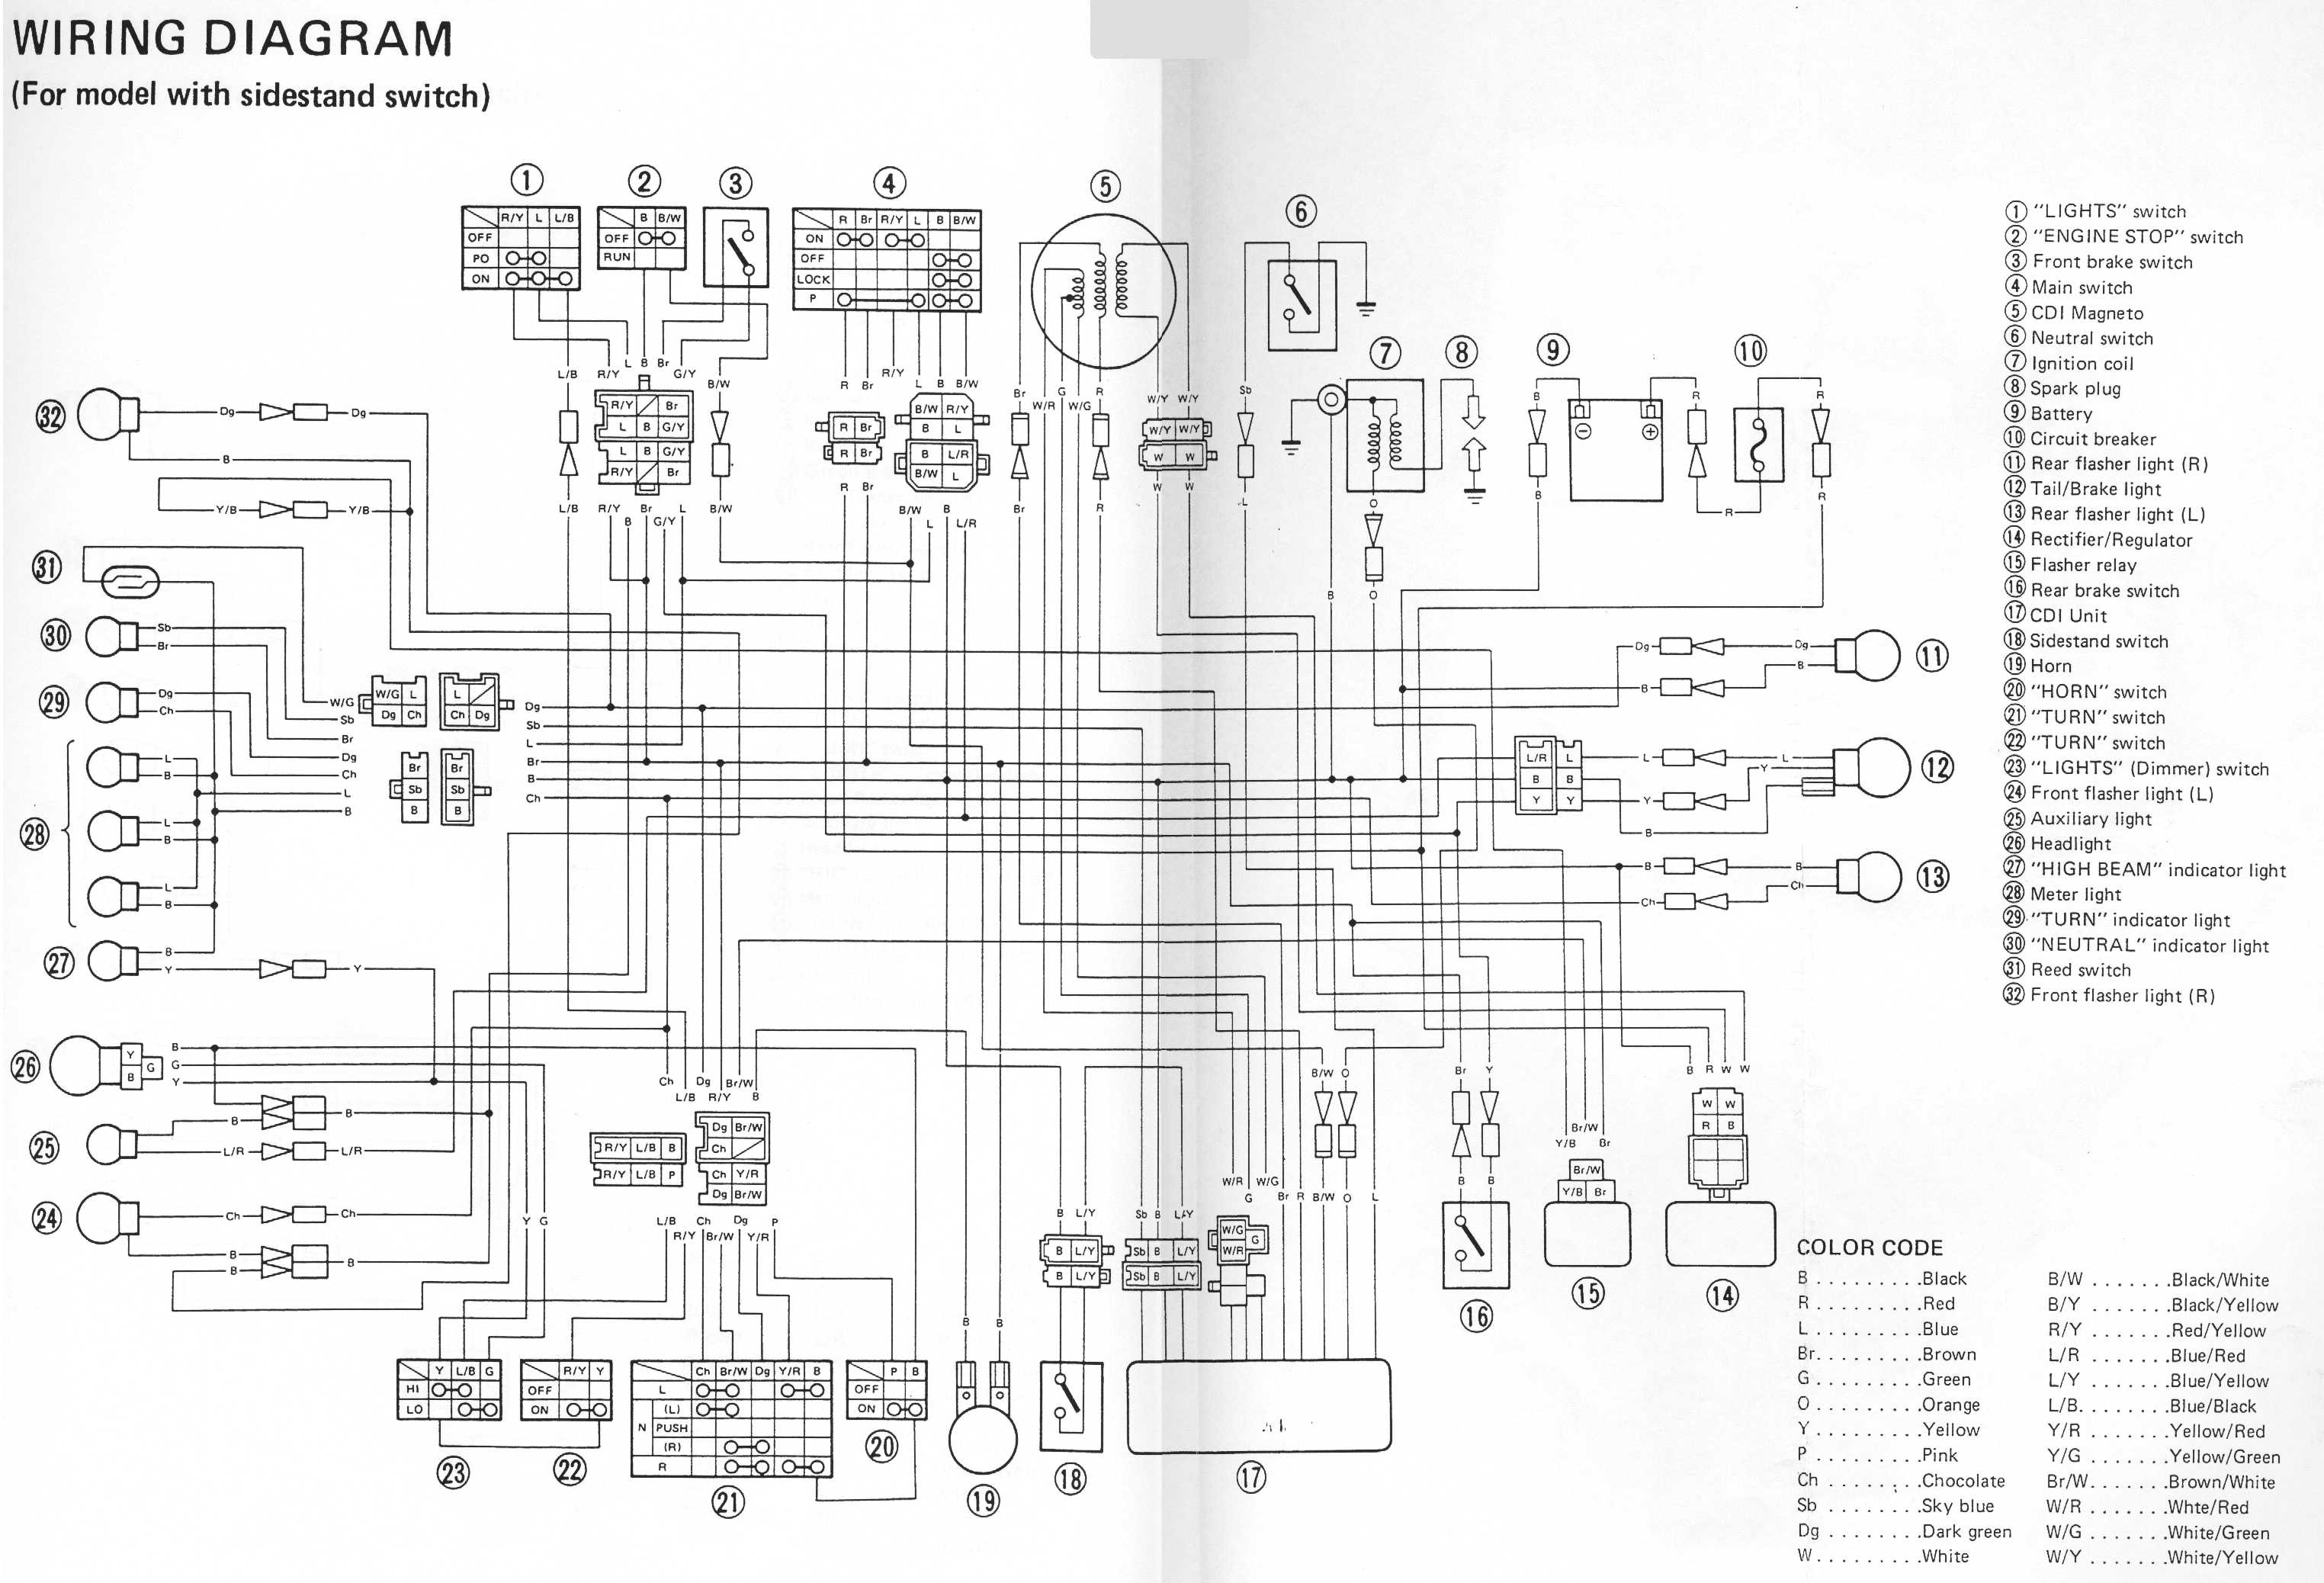 2008 r6 wiring harness diagram #20 Ninja 250 Wiring Diagram 2008 r6 wiring harness diagram